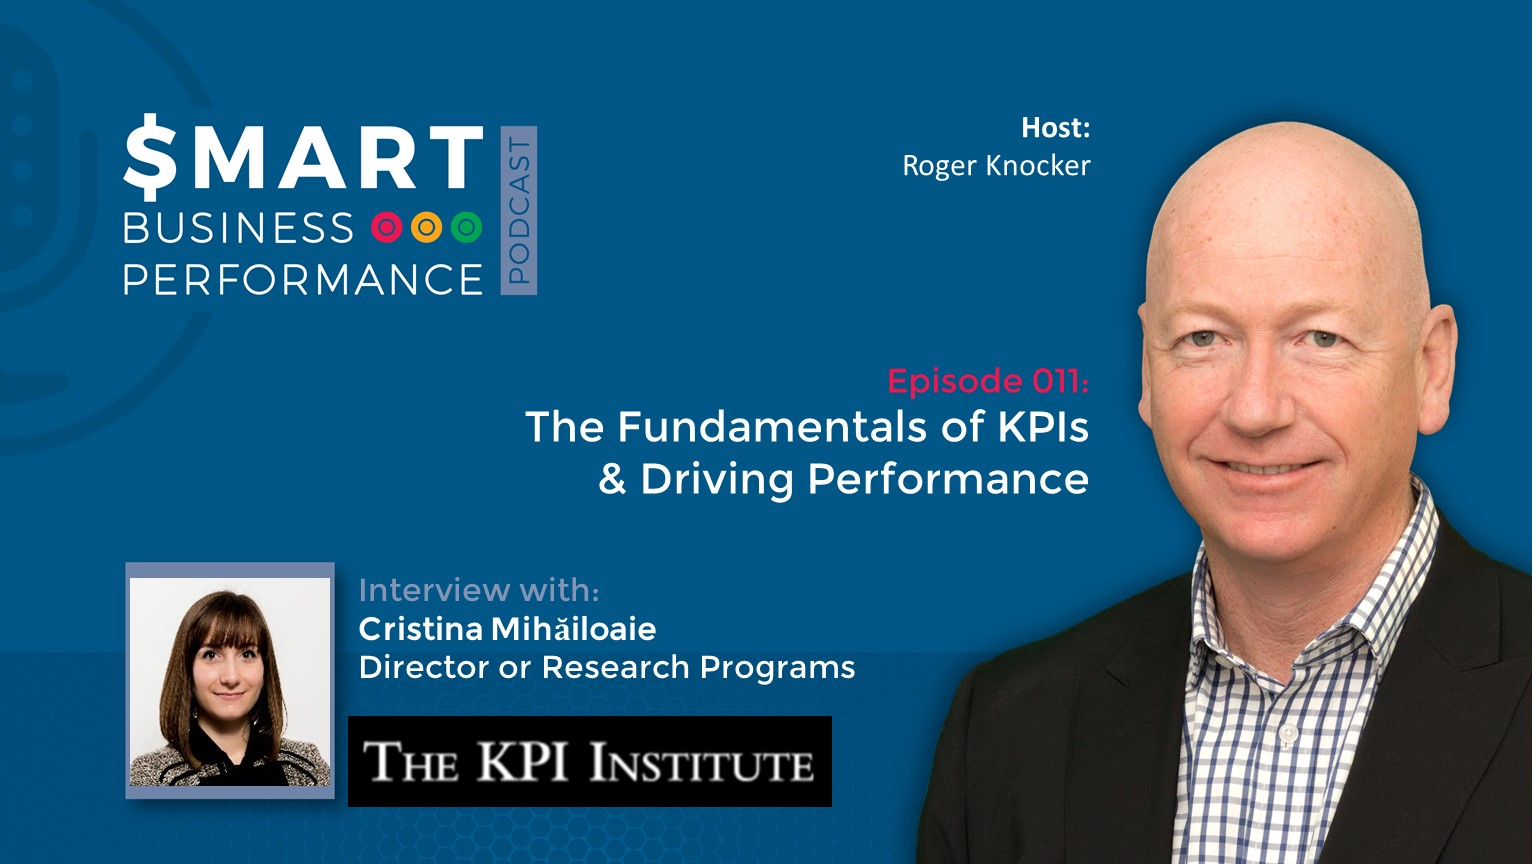 The Fundamentals of KPIs and Performance ad